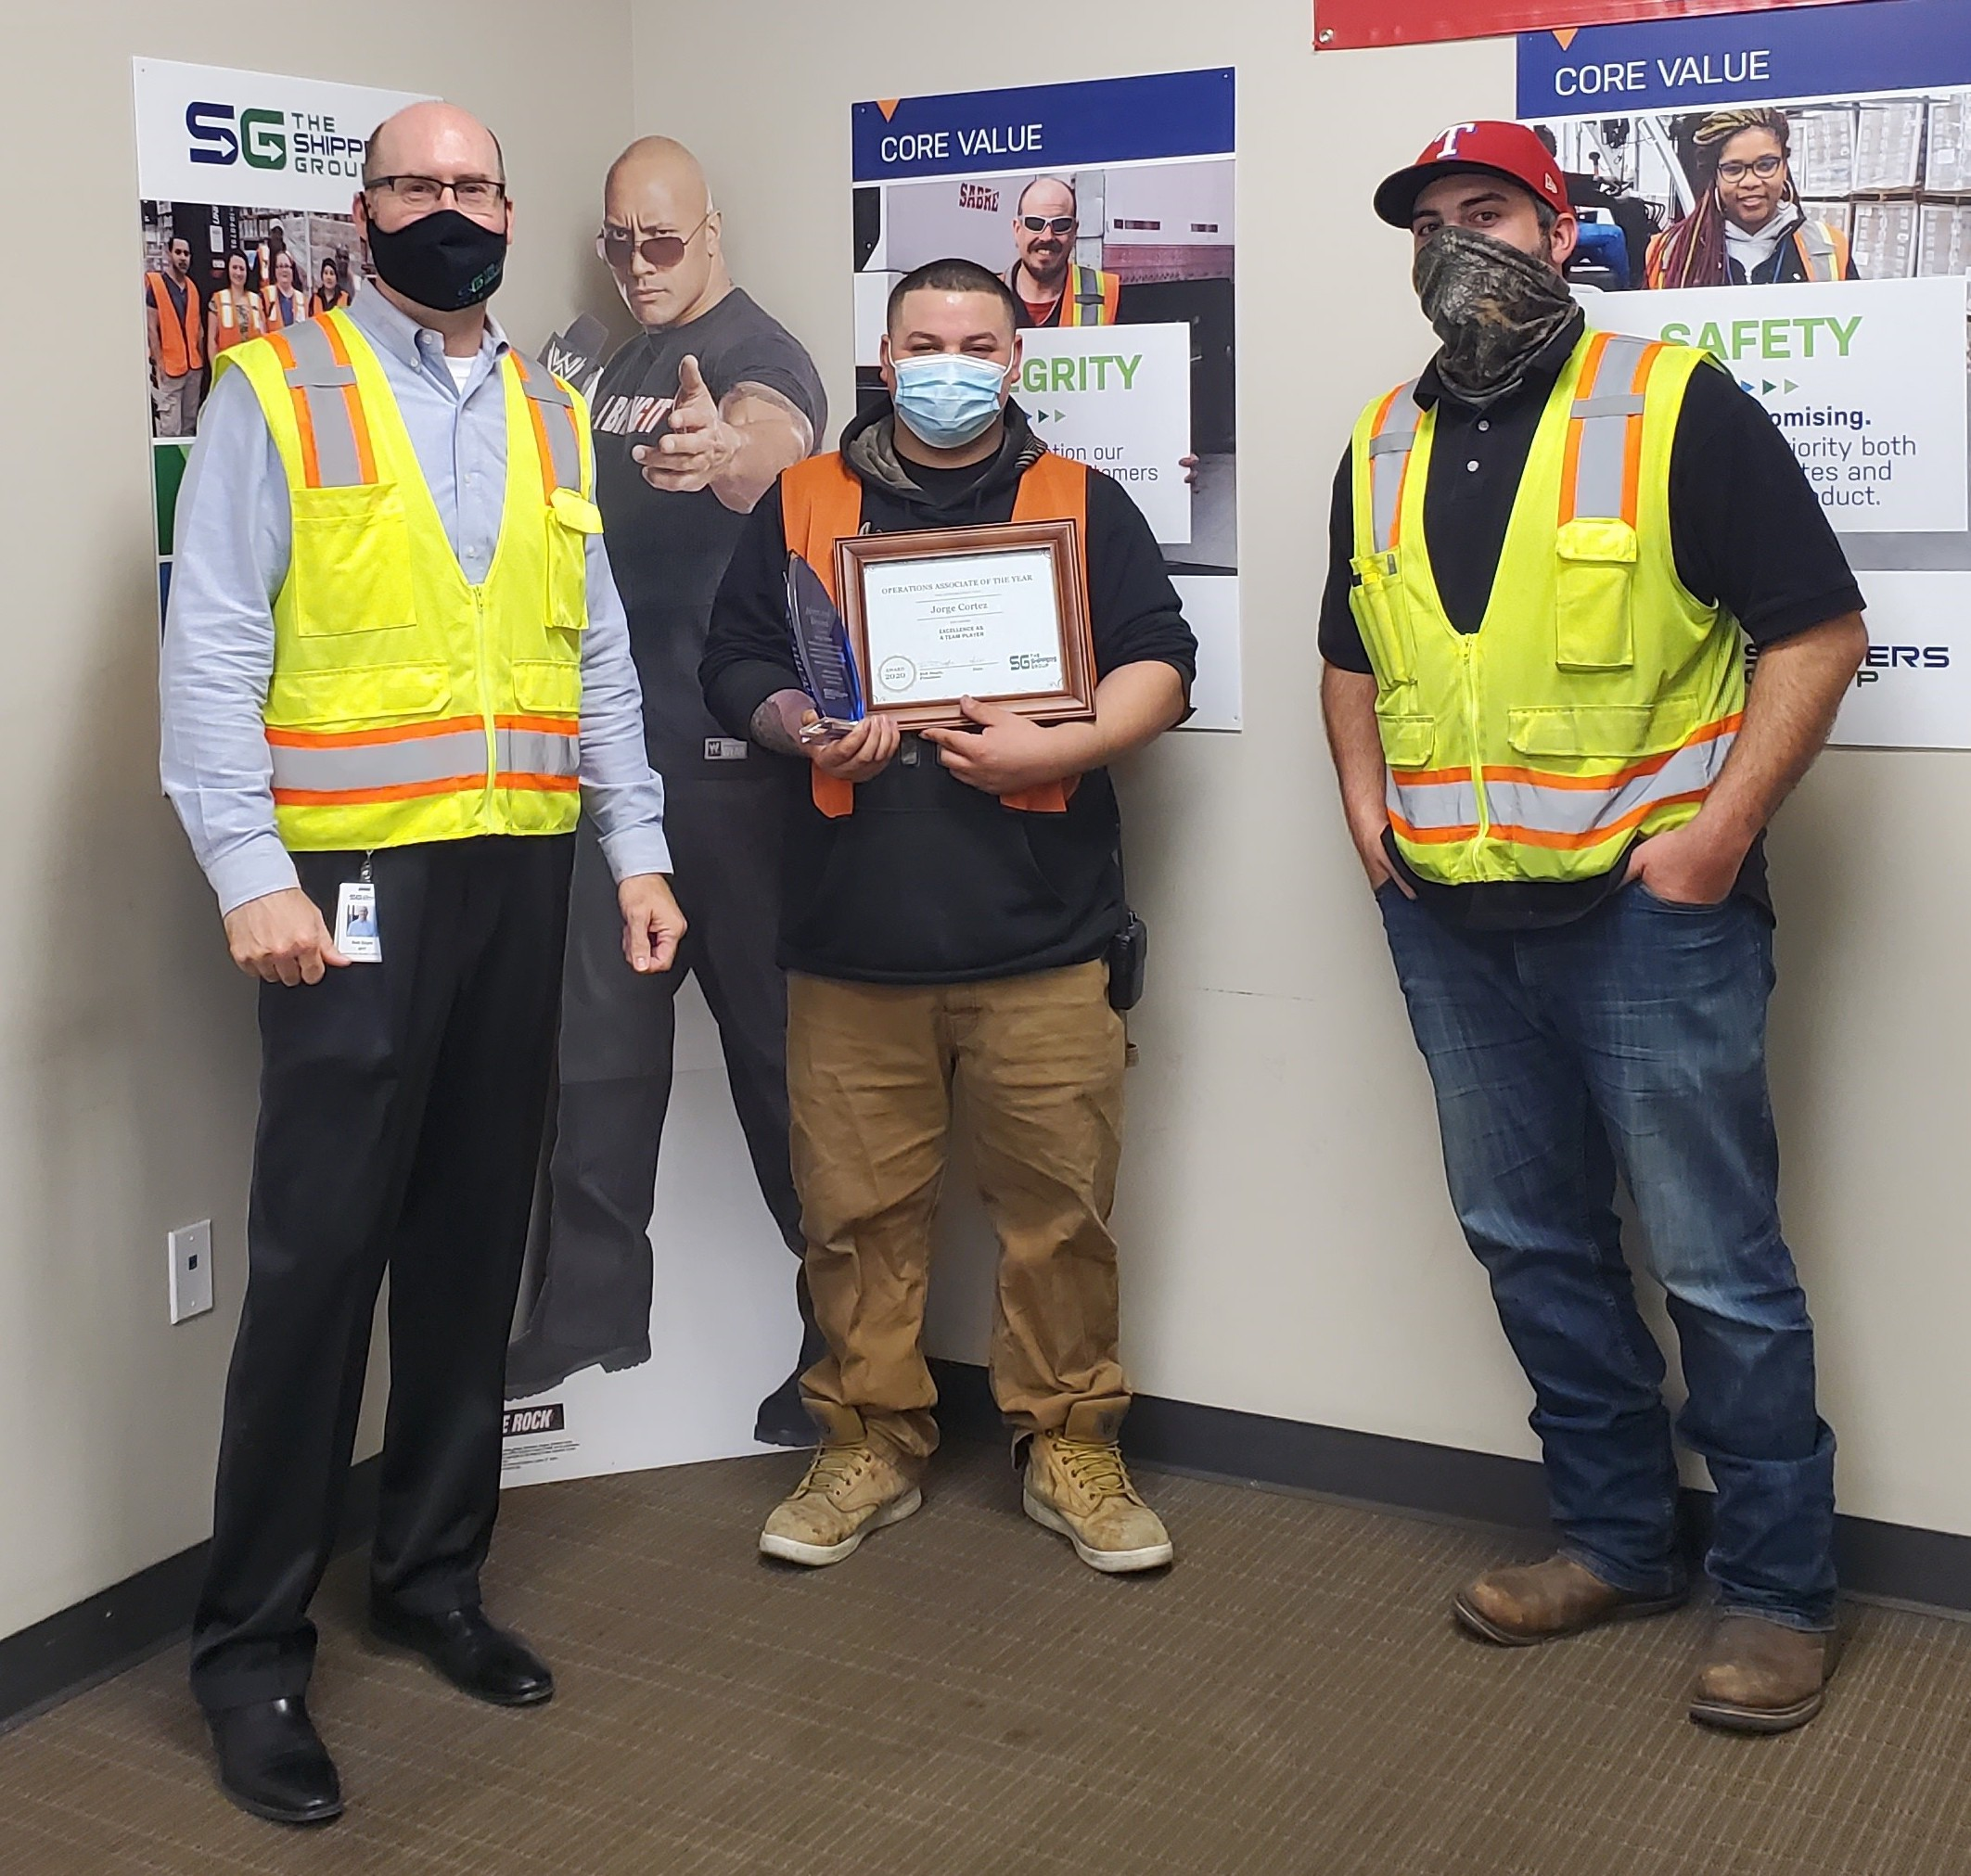 The Shippers Group Names Jorge Cortez as 2020's Operations Associate of the Year